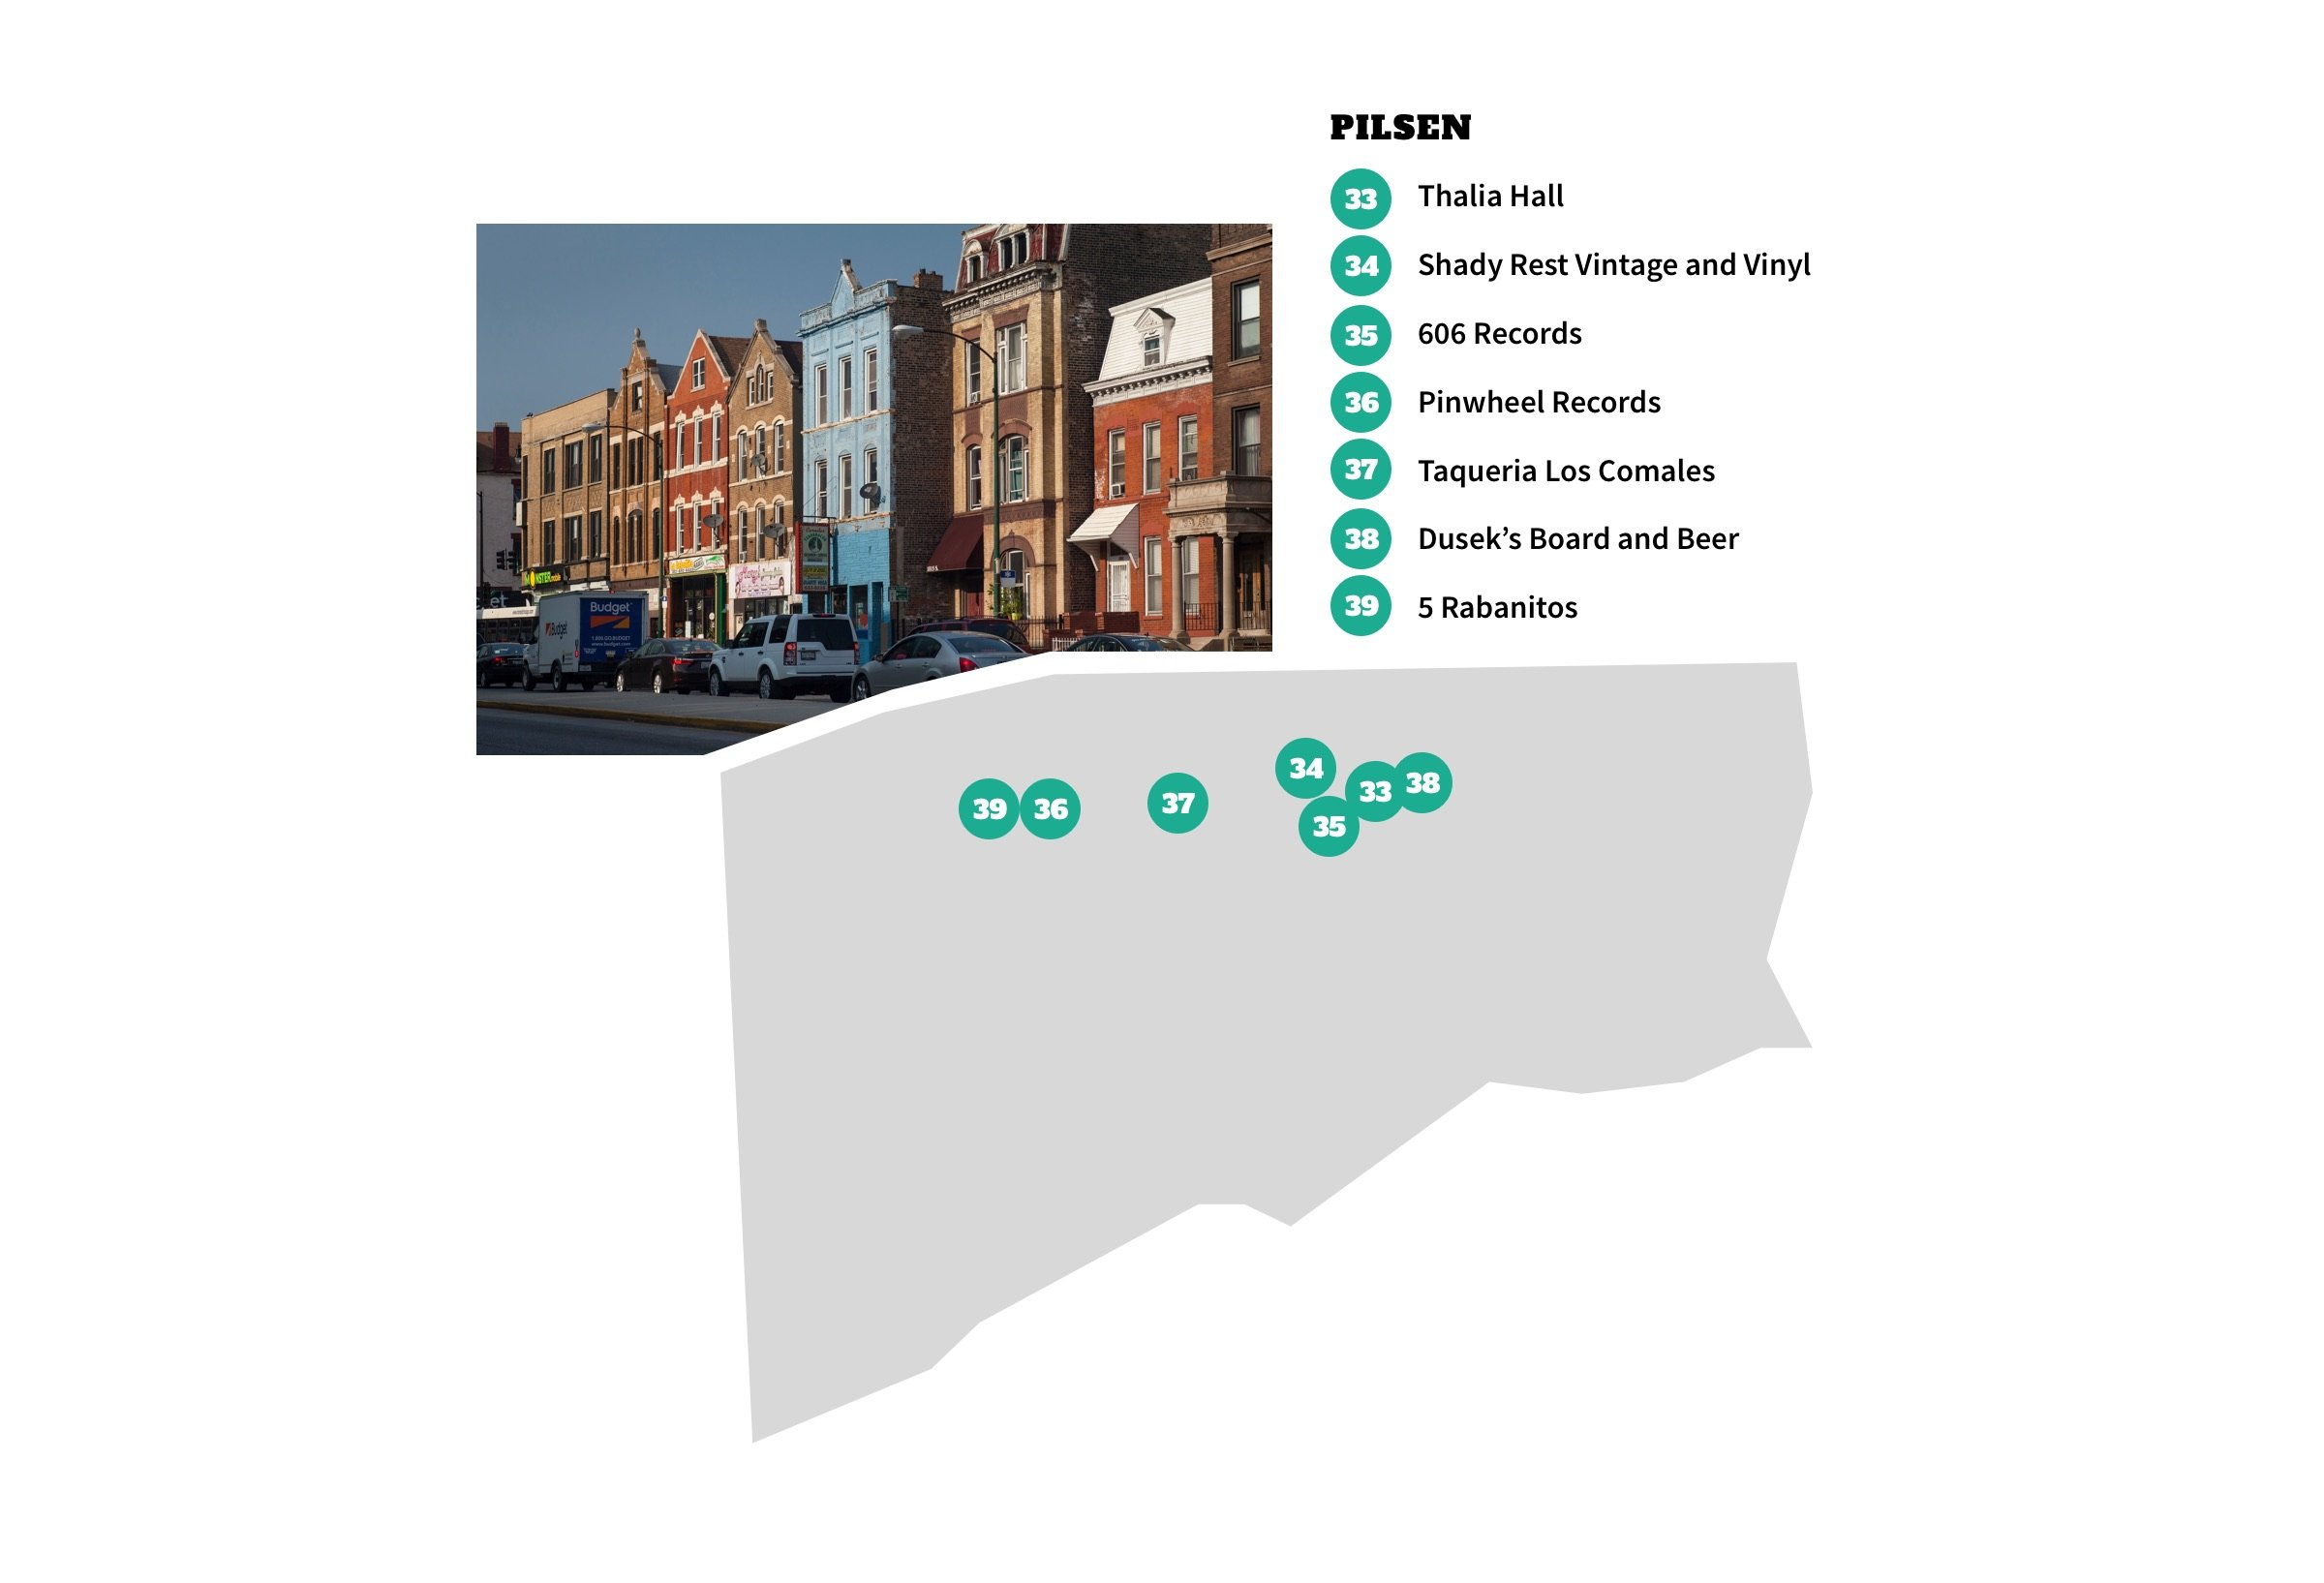 Pilsen, Chicago Neighborhood Map